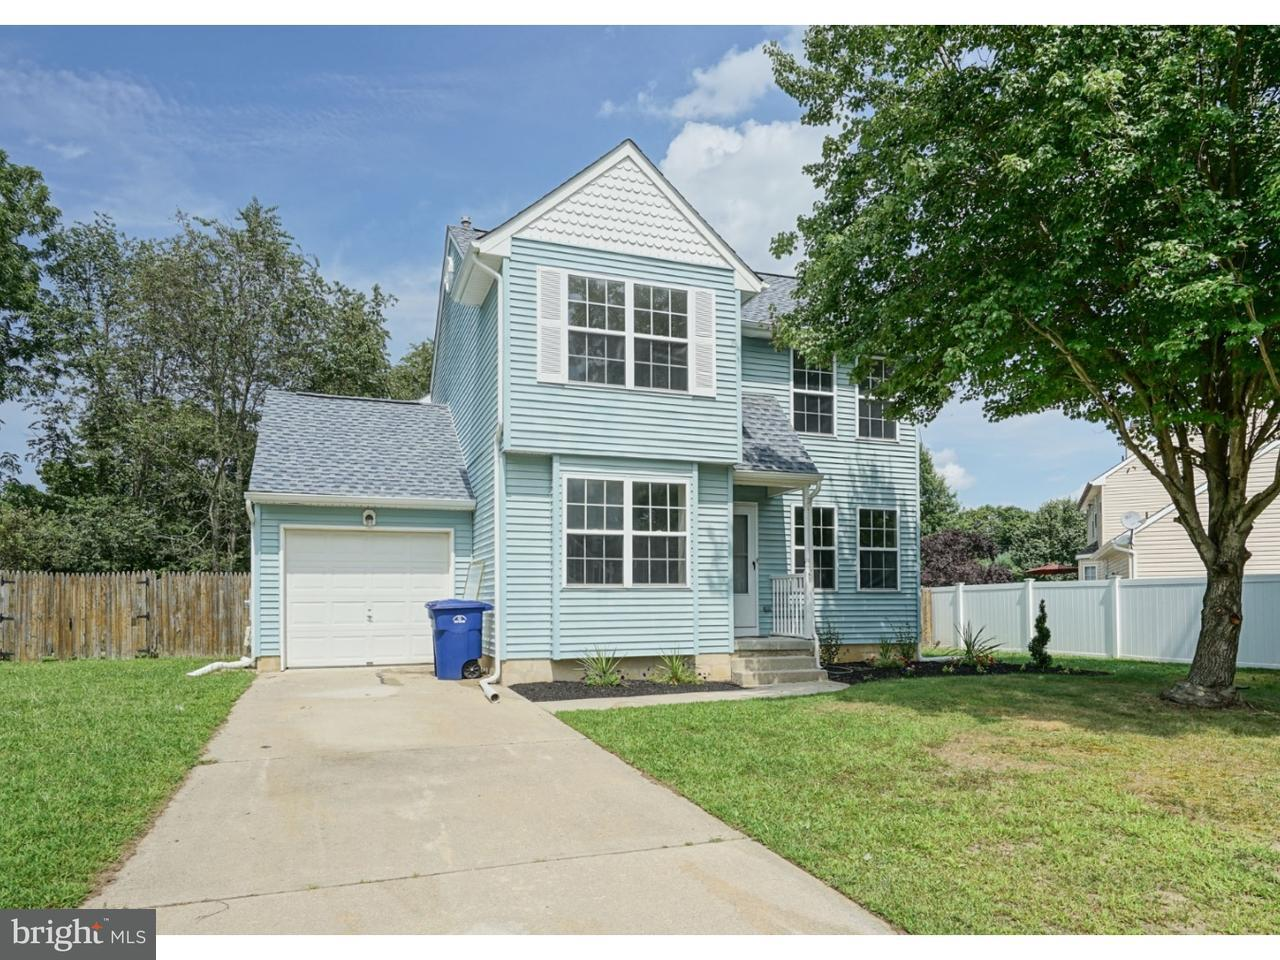 Townhouse for Rent at 3 PADDOCK WAY Mount Holly, New Jersey 08060 United States